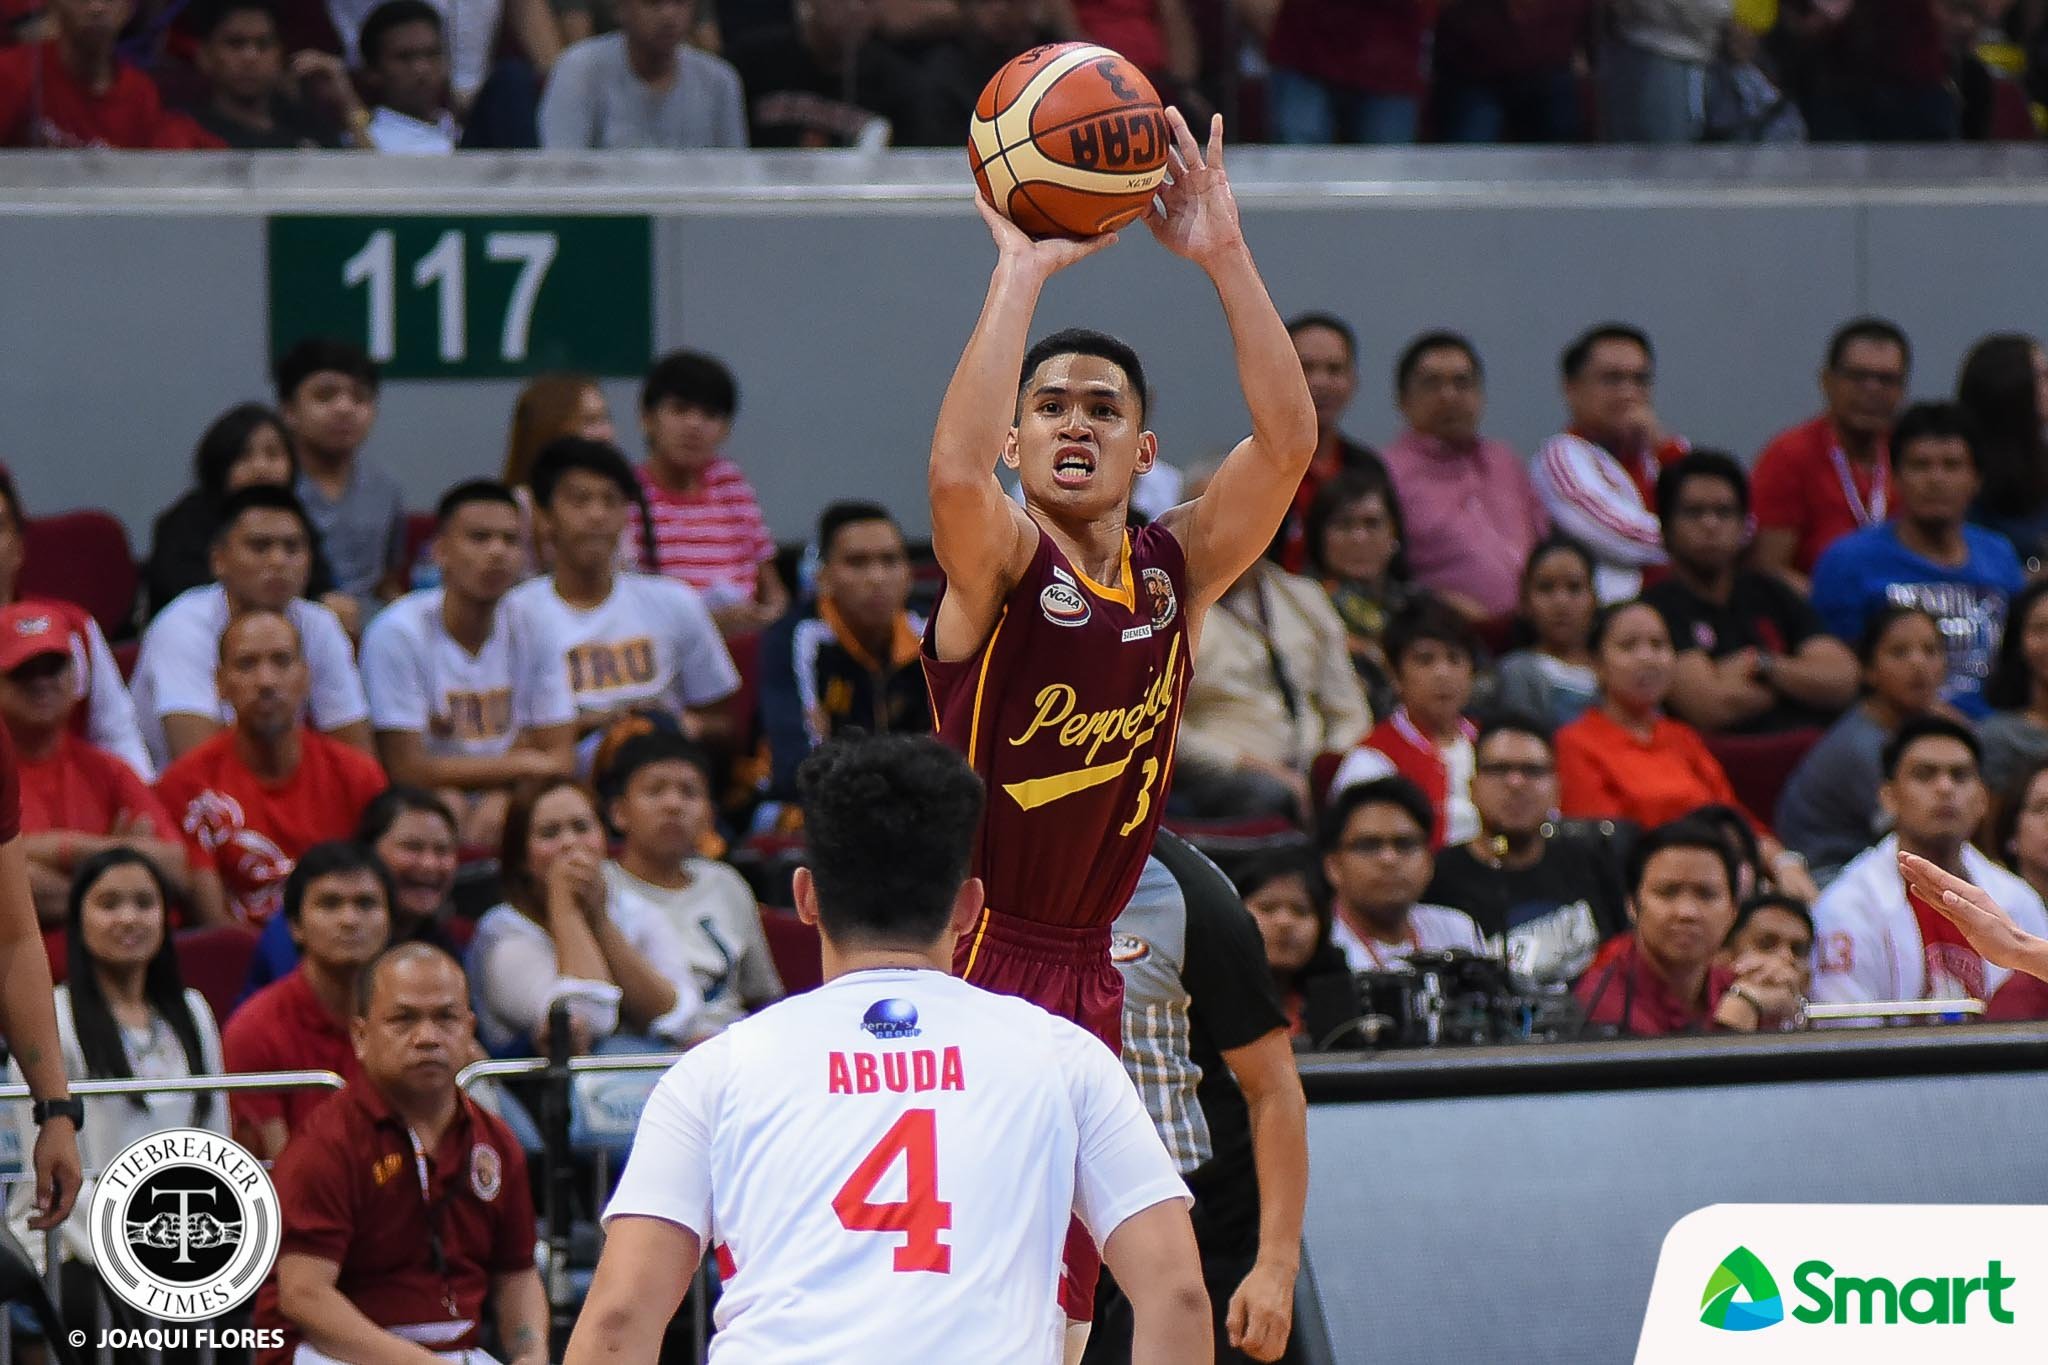 Tiebreaker Times Frankie Lim on Perpetual's close game against San Beda: 'They have to admit it, kinabahan sila' Basketball NCAA News UPHSD  Perpetual Seniors Basketball NCAA Season 93 Seniors Basketball NCAA Season 93 Frankie Lim